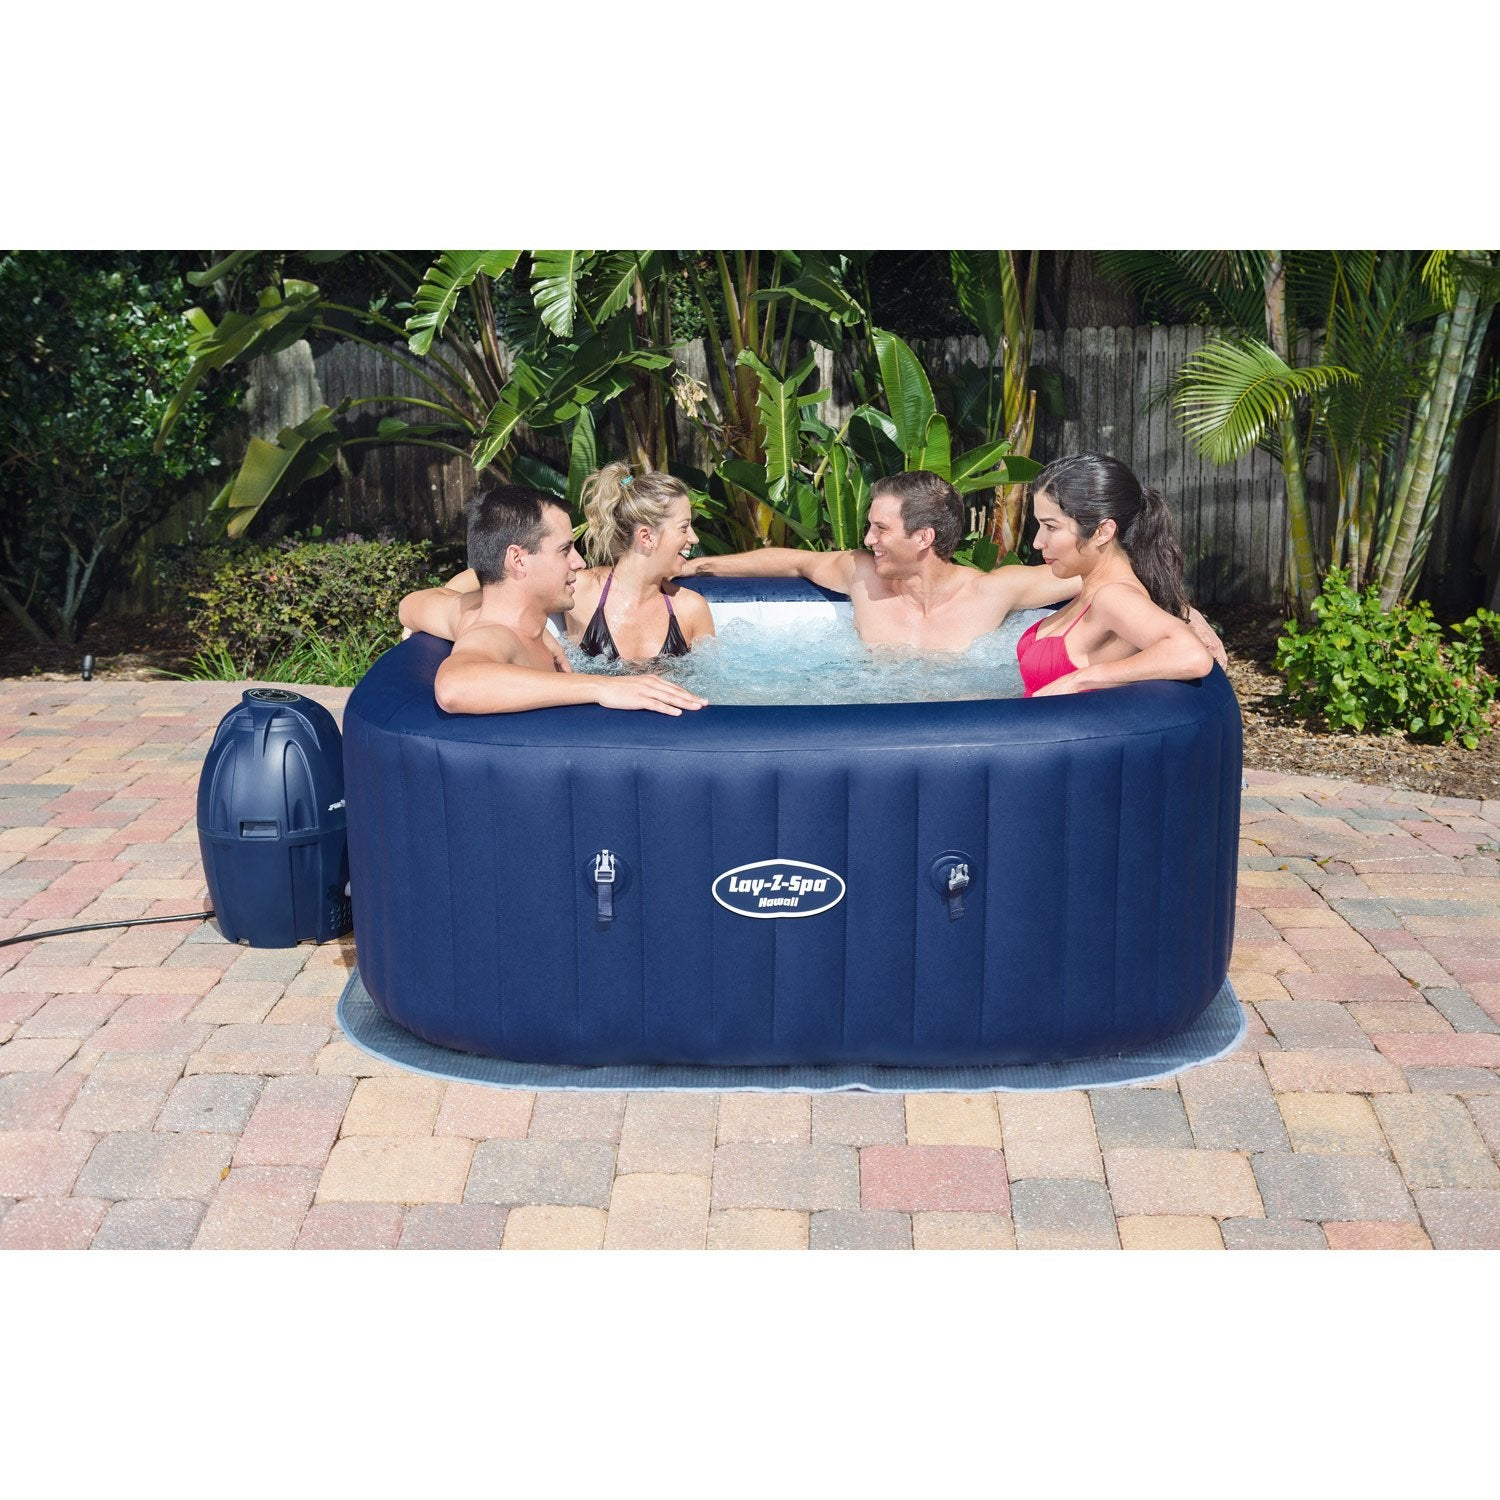 Spa gonflable bestway hawa carr 6 places assises leroy merlin - Location de jacuzzi a domicile ...